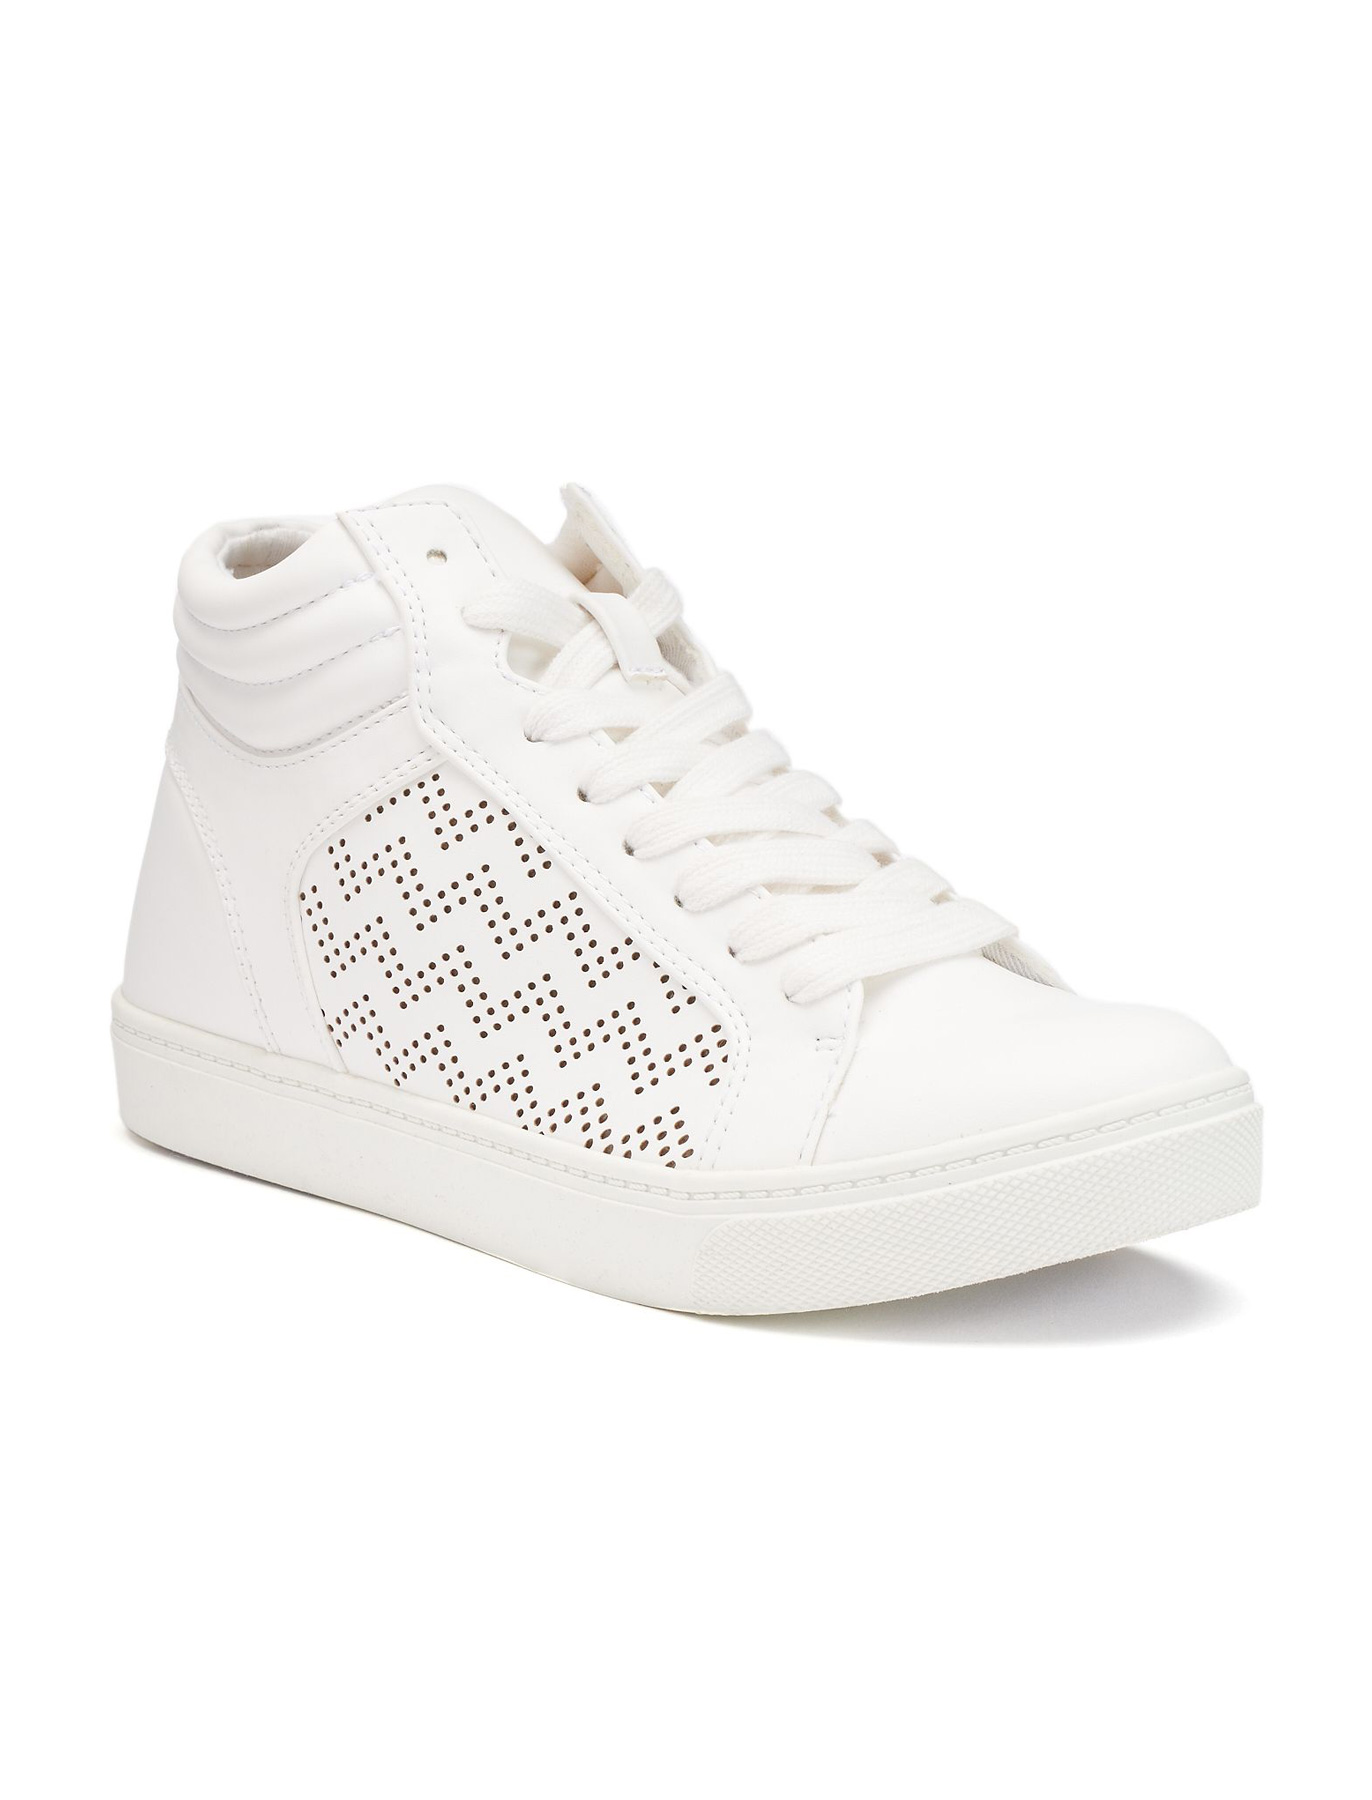 SO for Kohl's Women's Perforated High-Top Sneakers